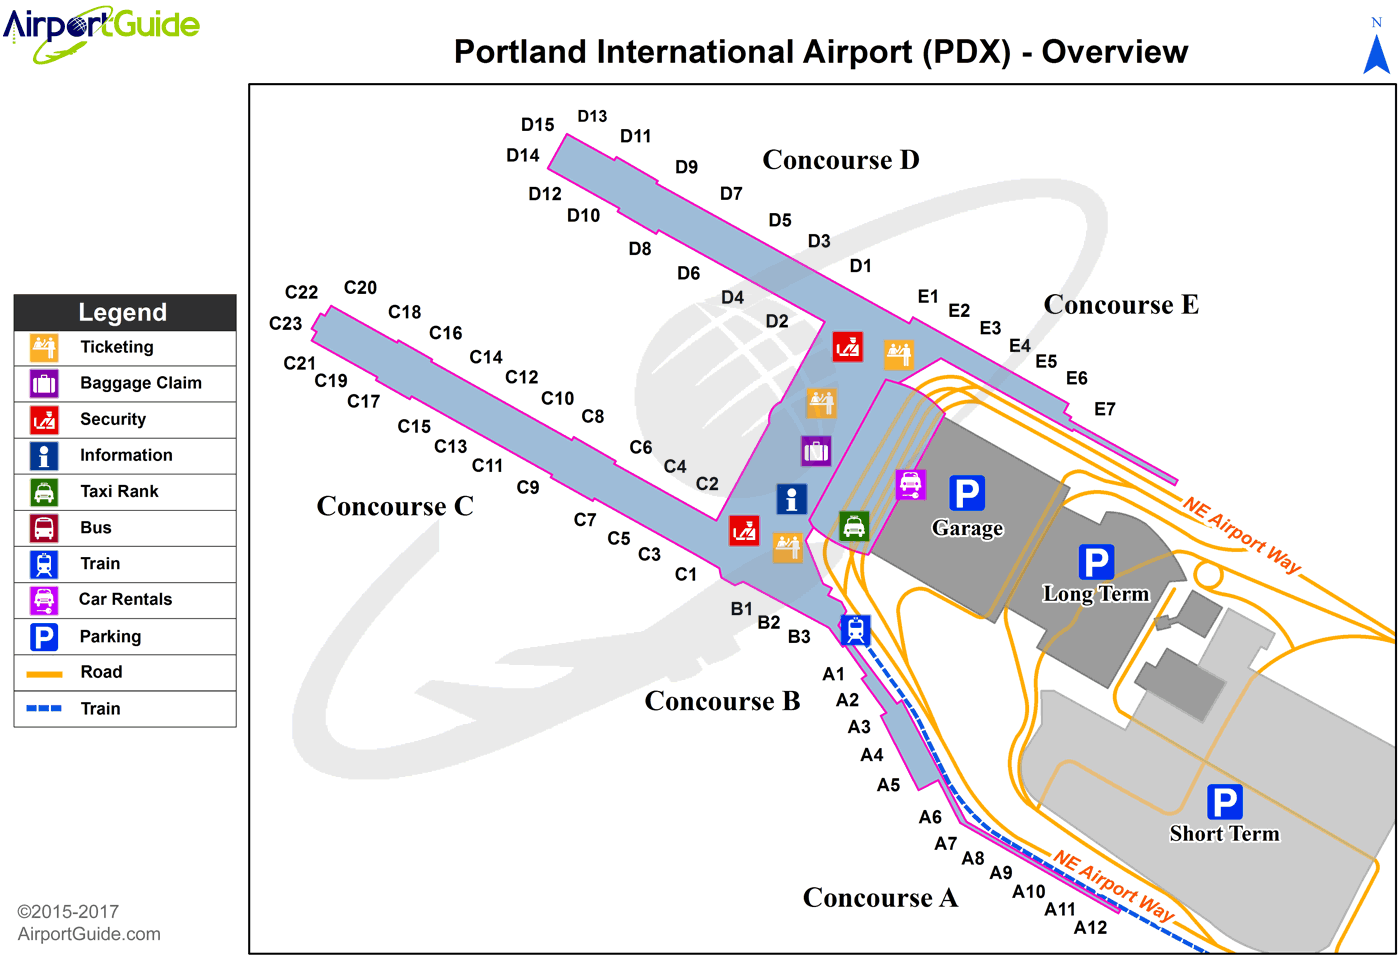 Portland - Portland International (PDX) Airport Terminal Map - Overview